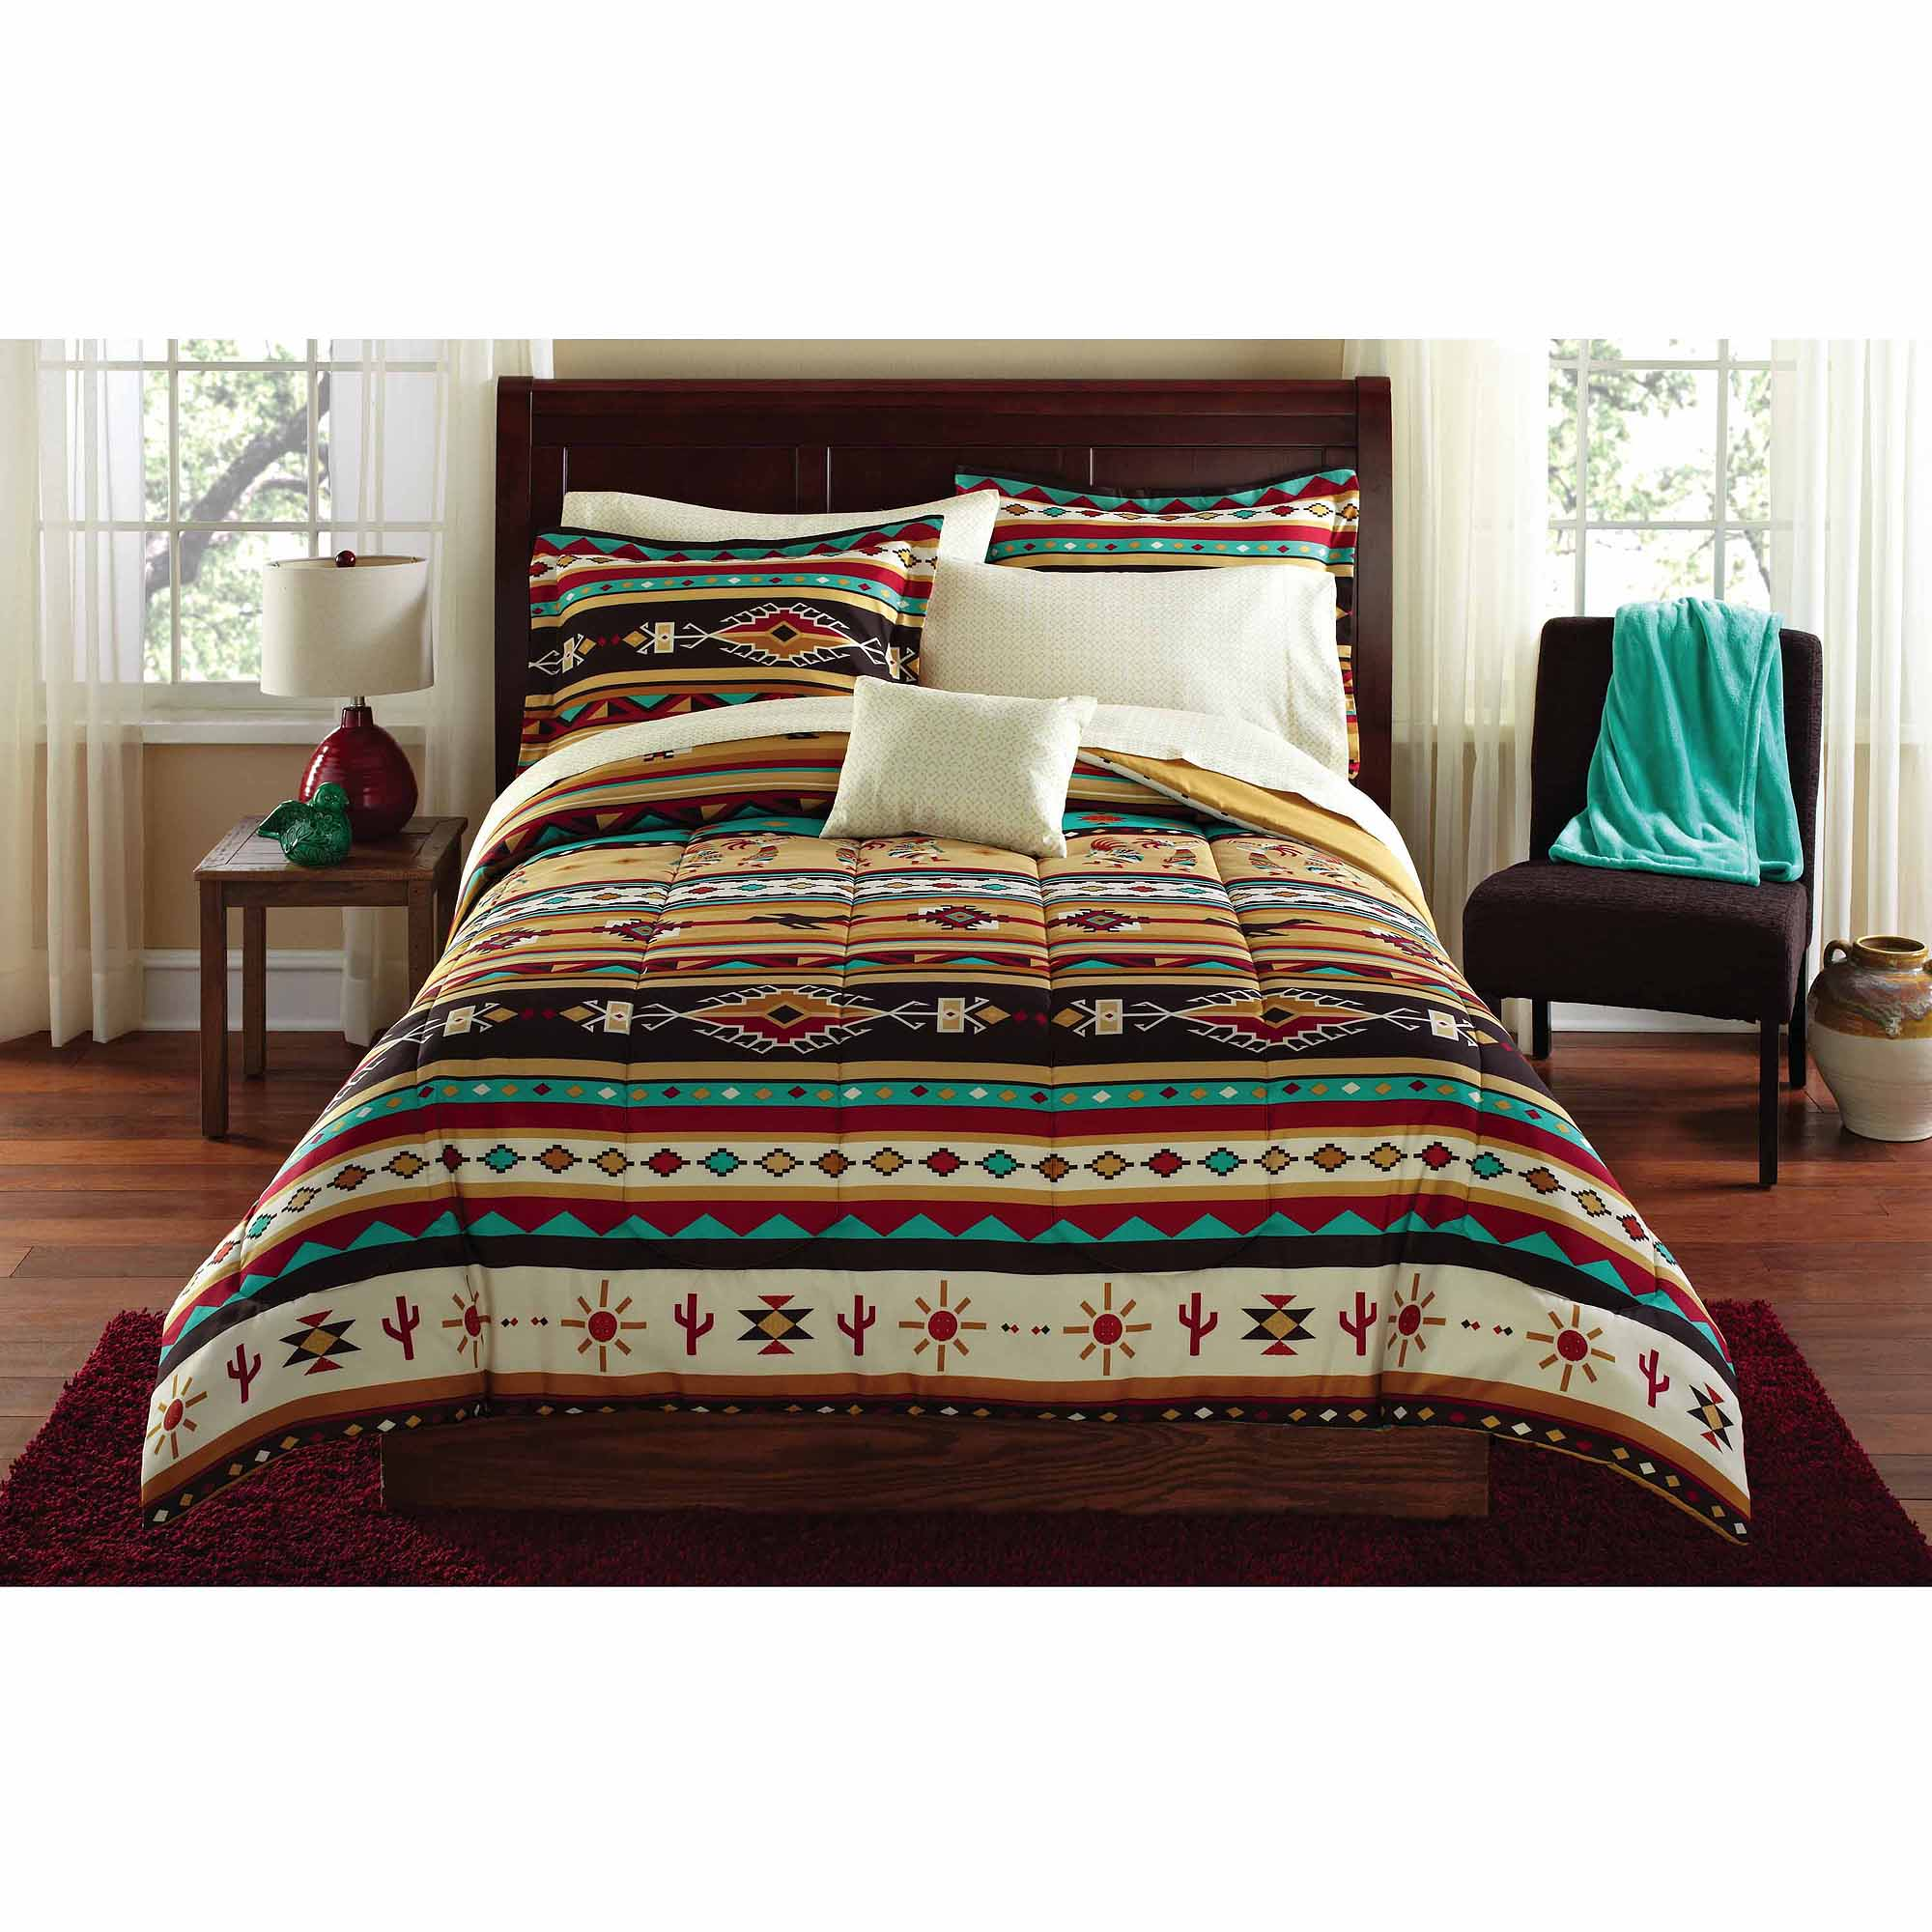 Mainstays Kokopeli Bed in a Bag Coordinated Bedding Set Walmart